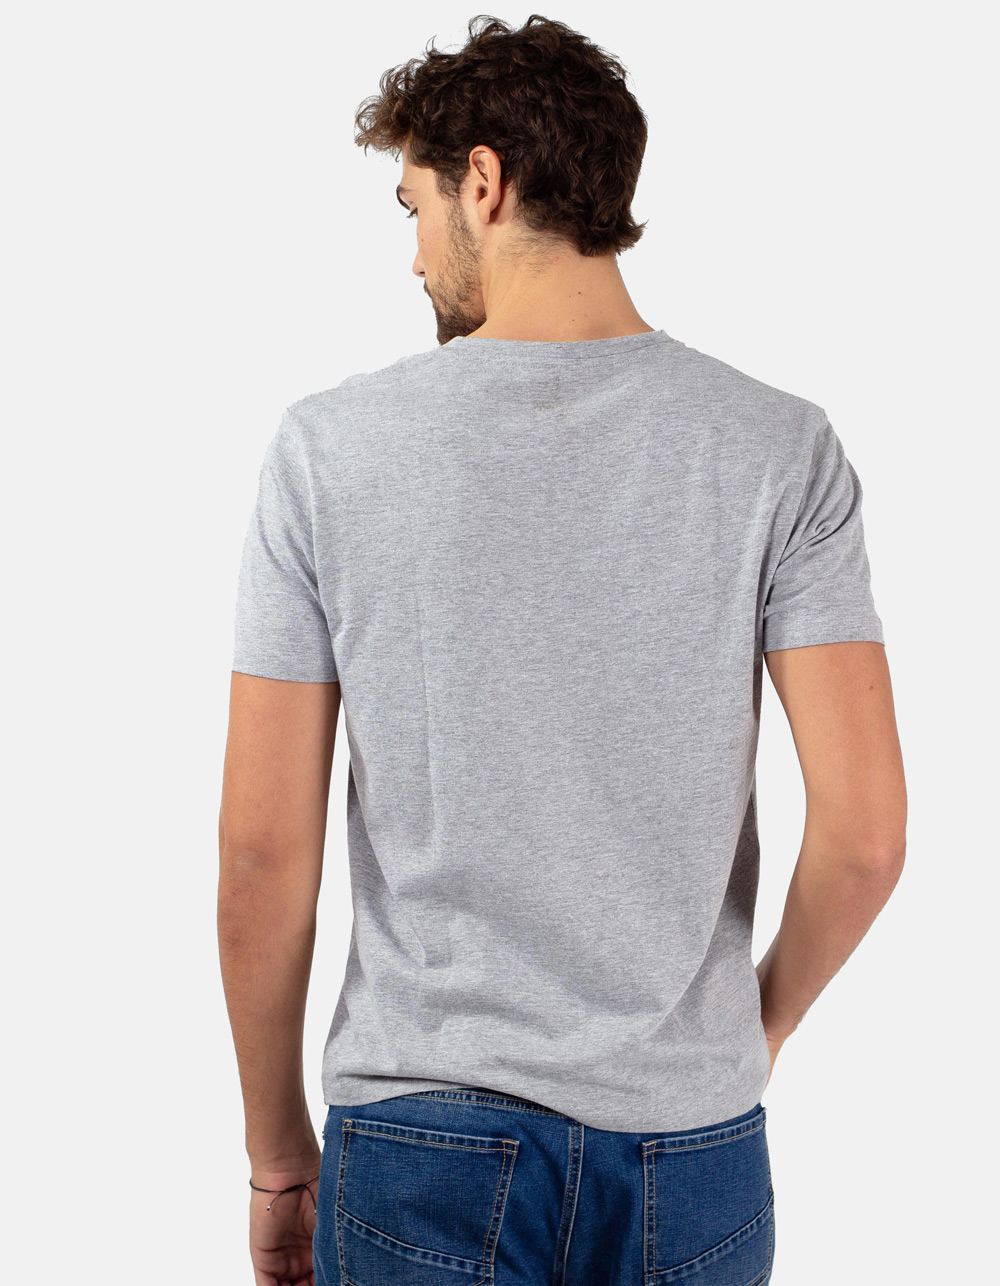 Grey round collar t-shirt - Backside